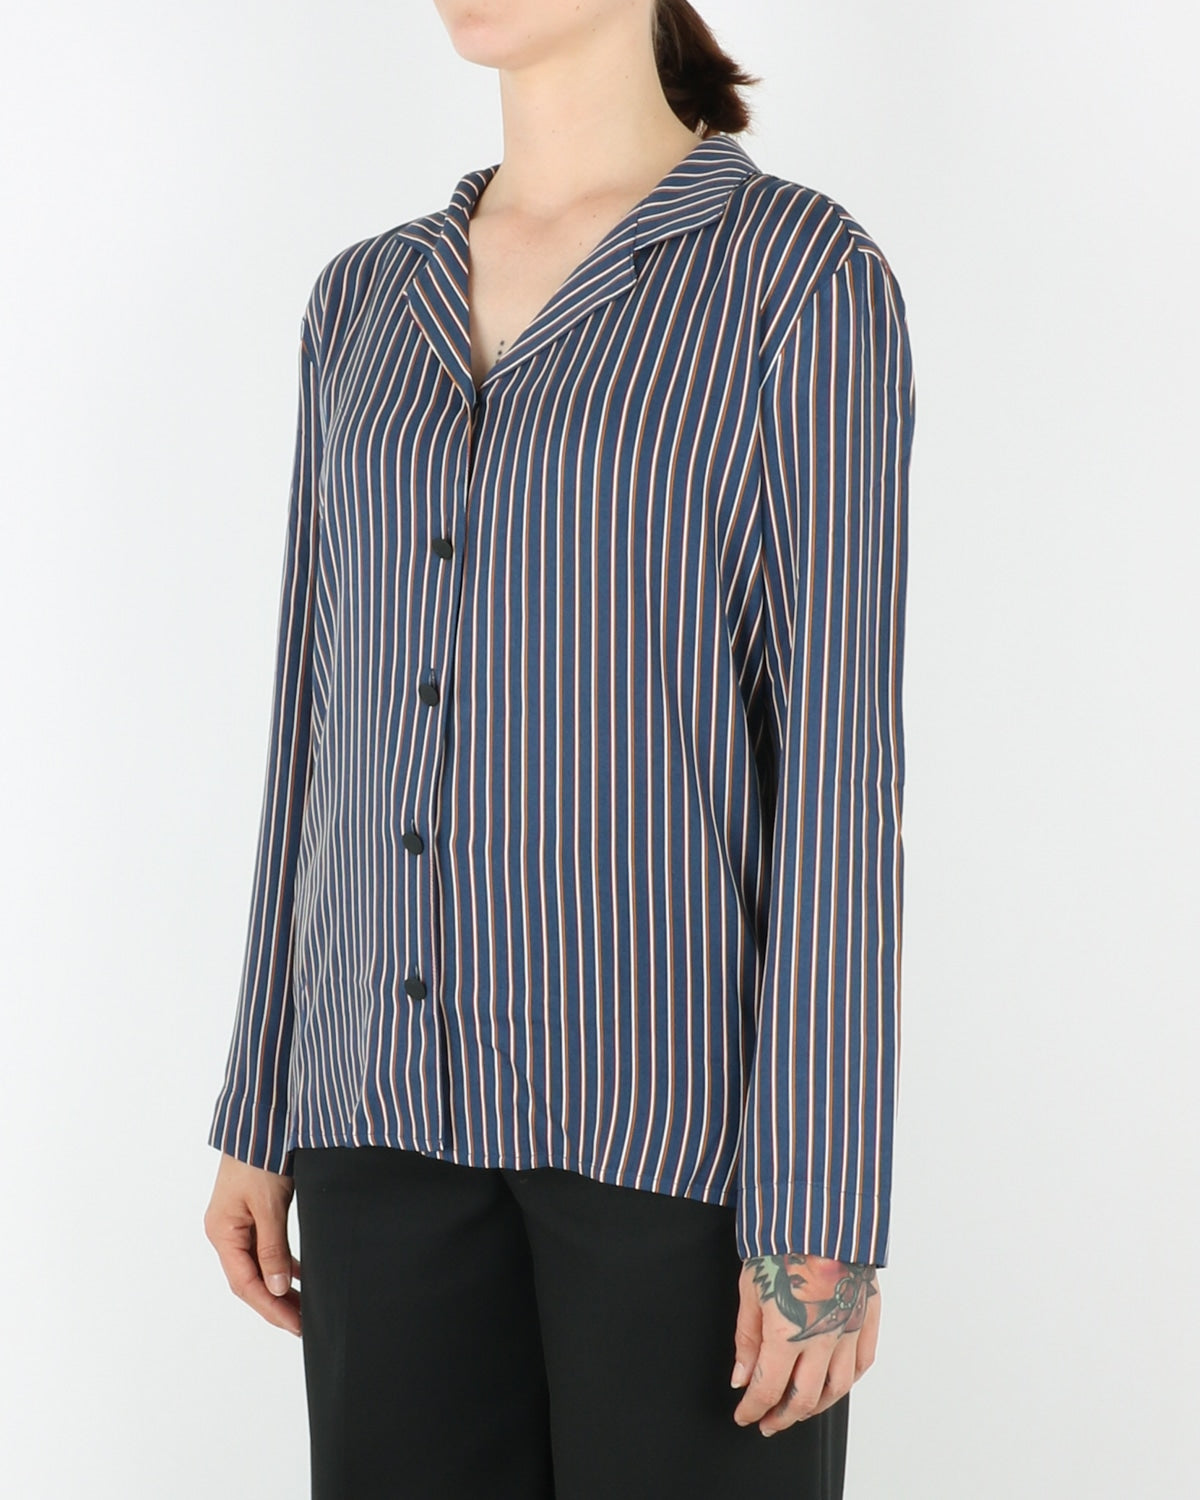 libertine libertine_page shirt_navy_view_2_3